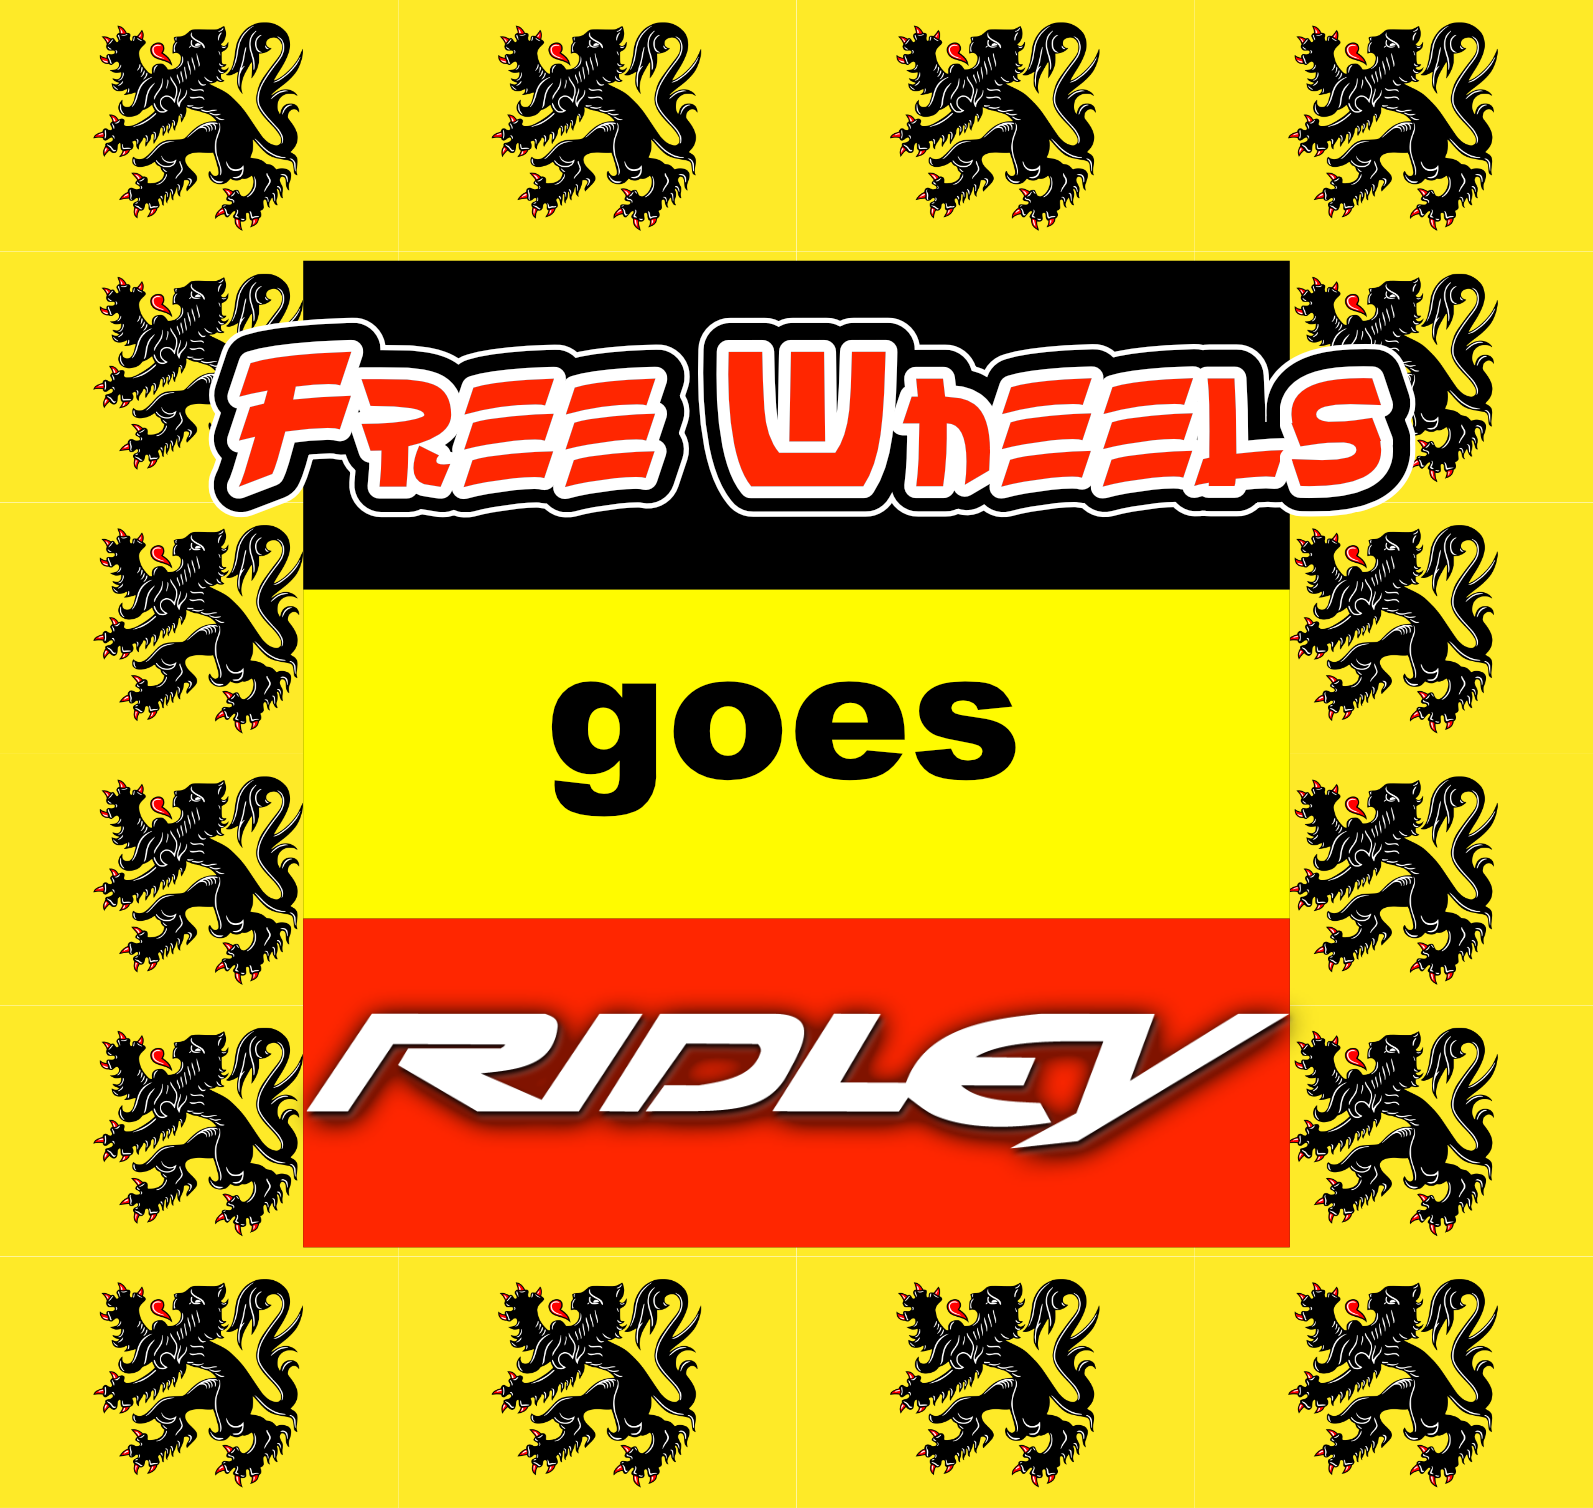 #free_wheels_shop goes Ridley